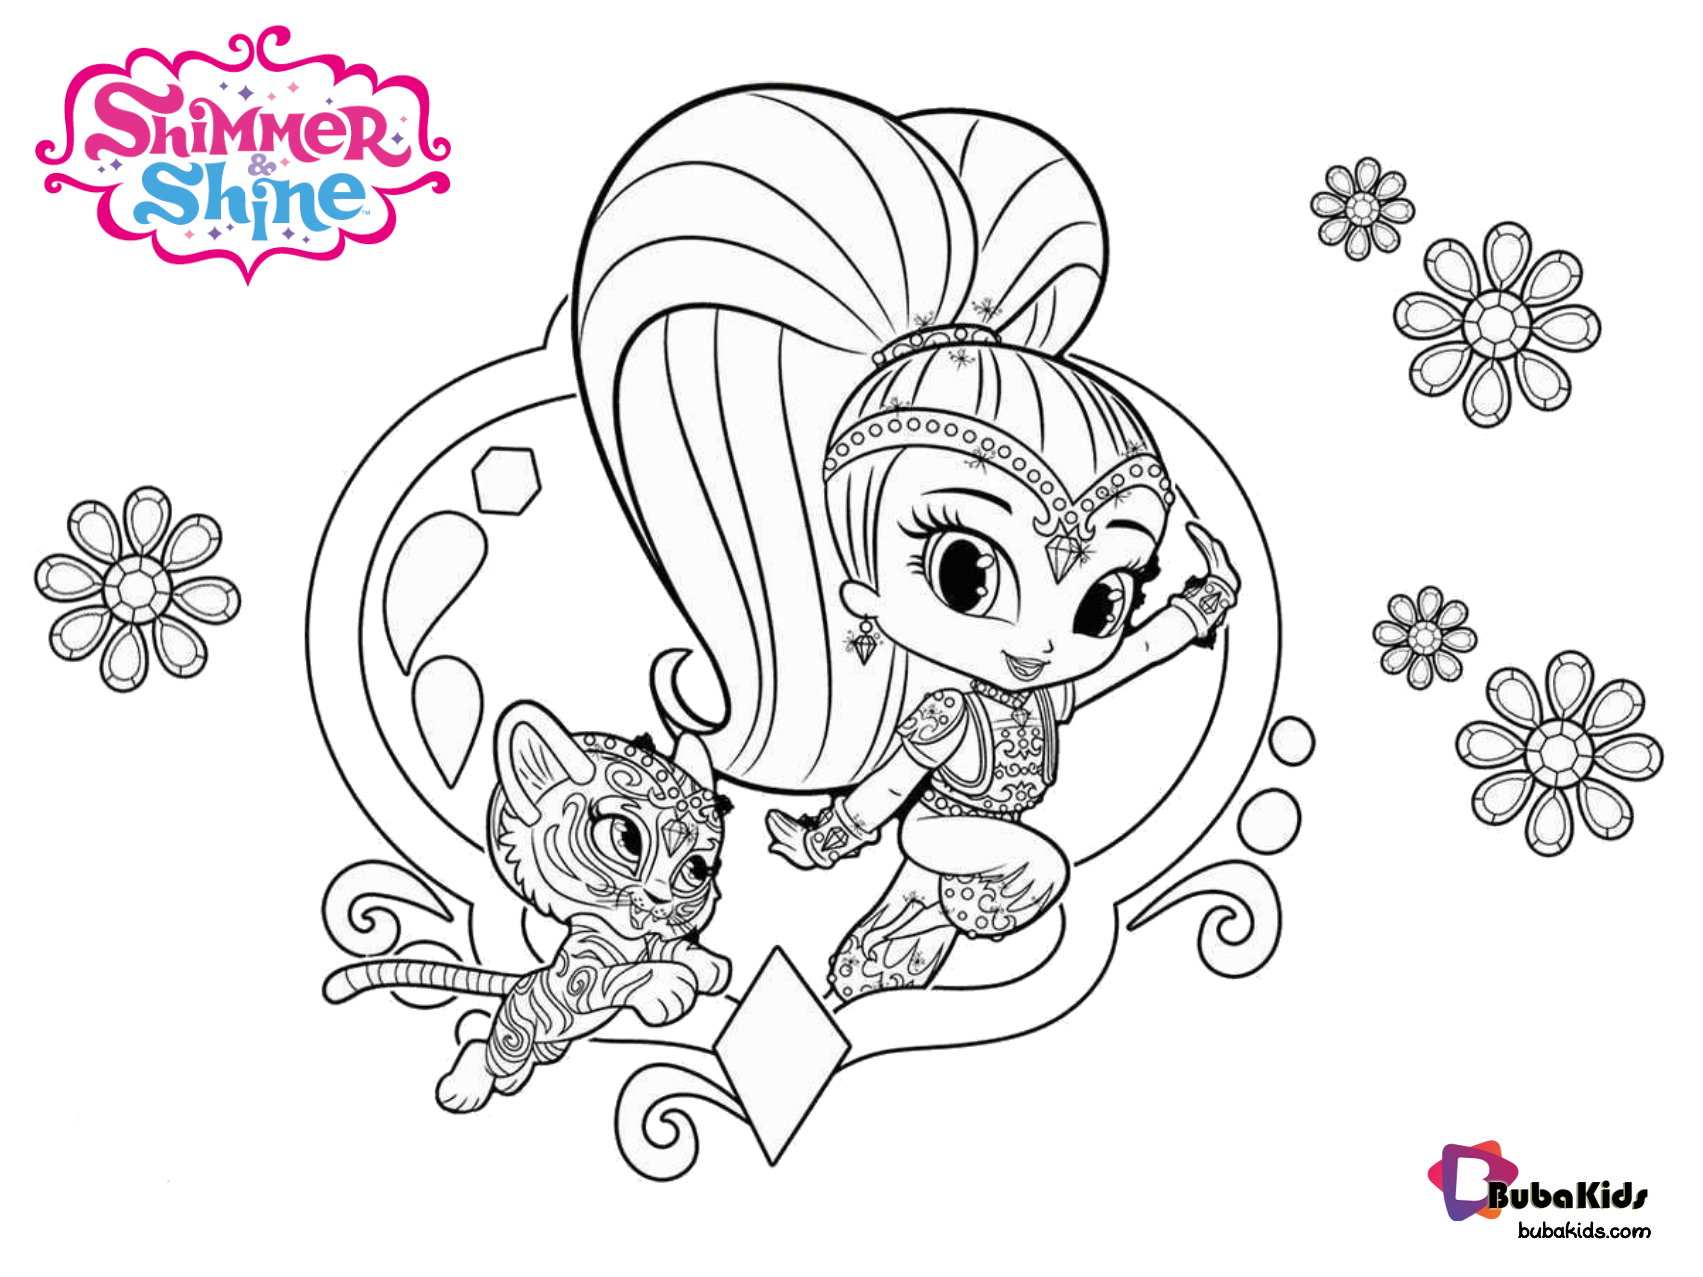 Shimmer And Shine Free Coloring Sheet Collection Of Cartoon Coloring Pages For Teenage Printable T Free Coloring Sheets Cartoon Coloring Pages Coloring Sheets